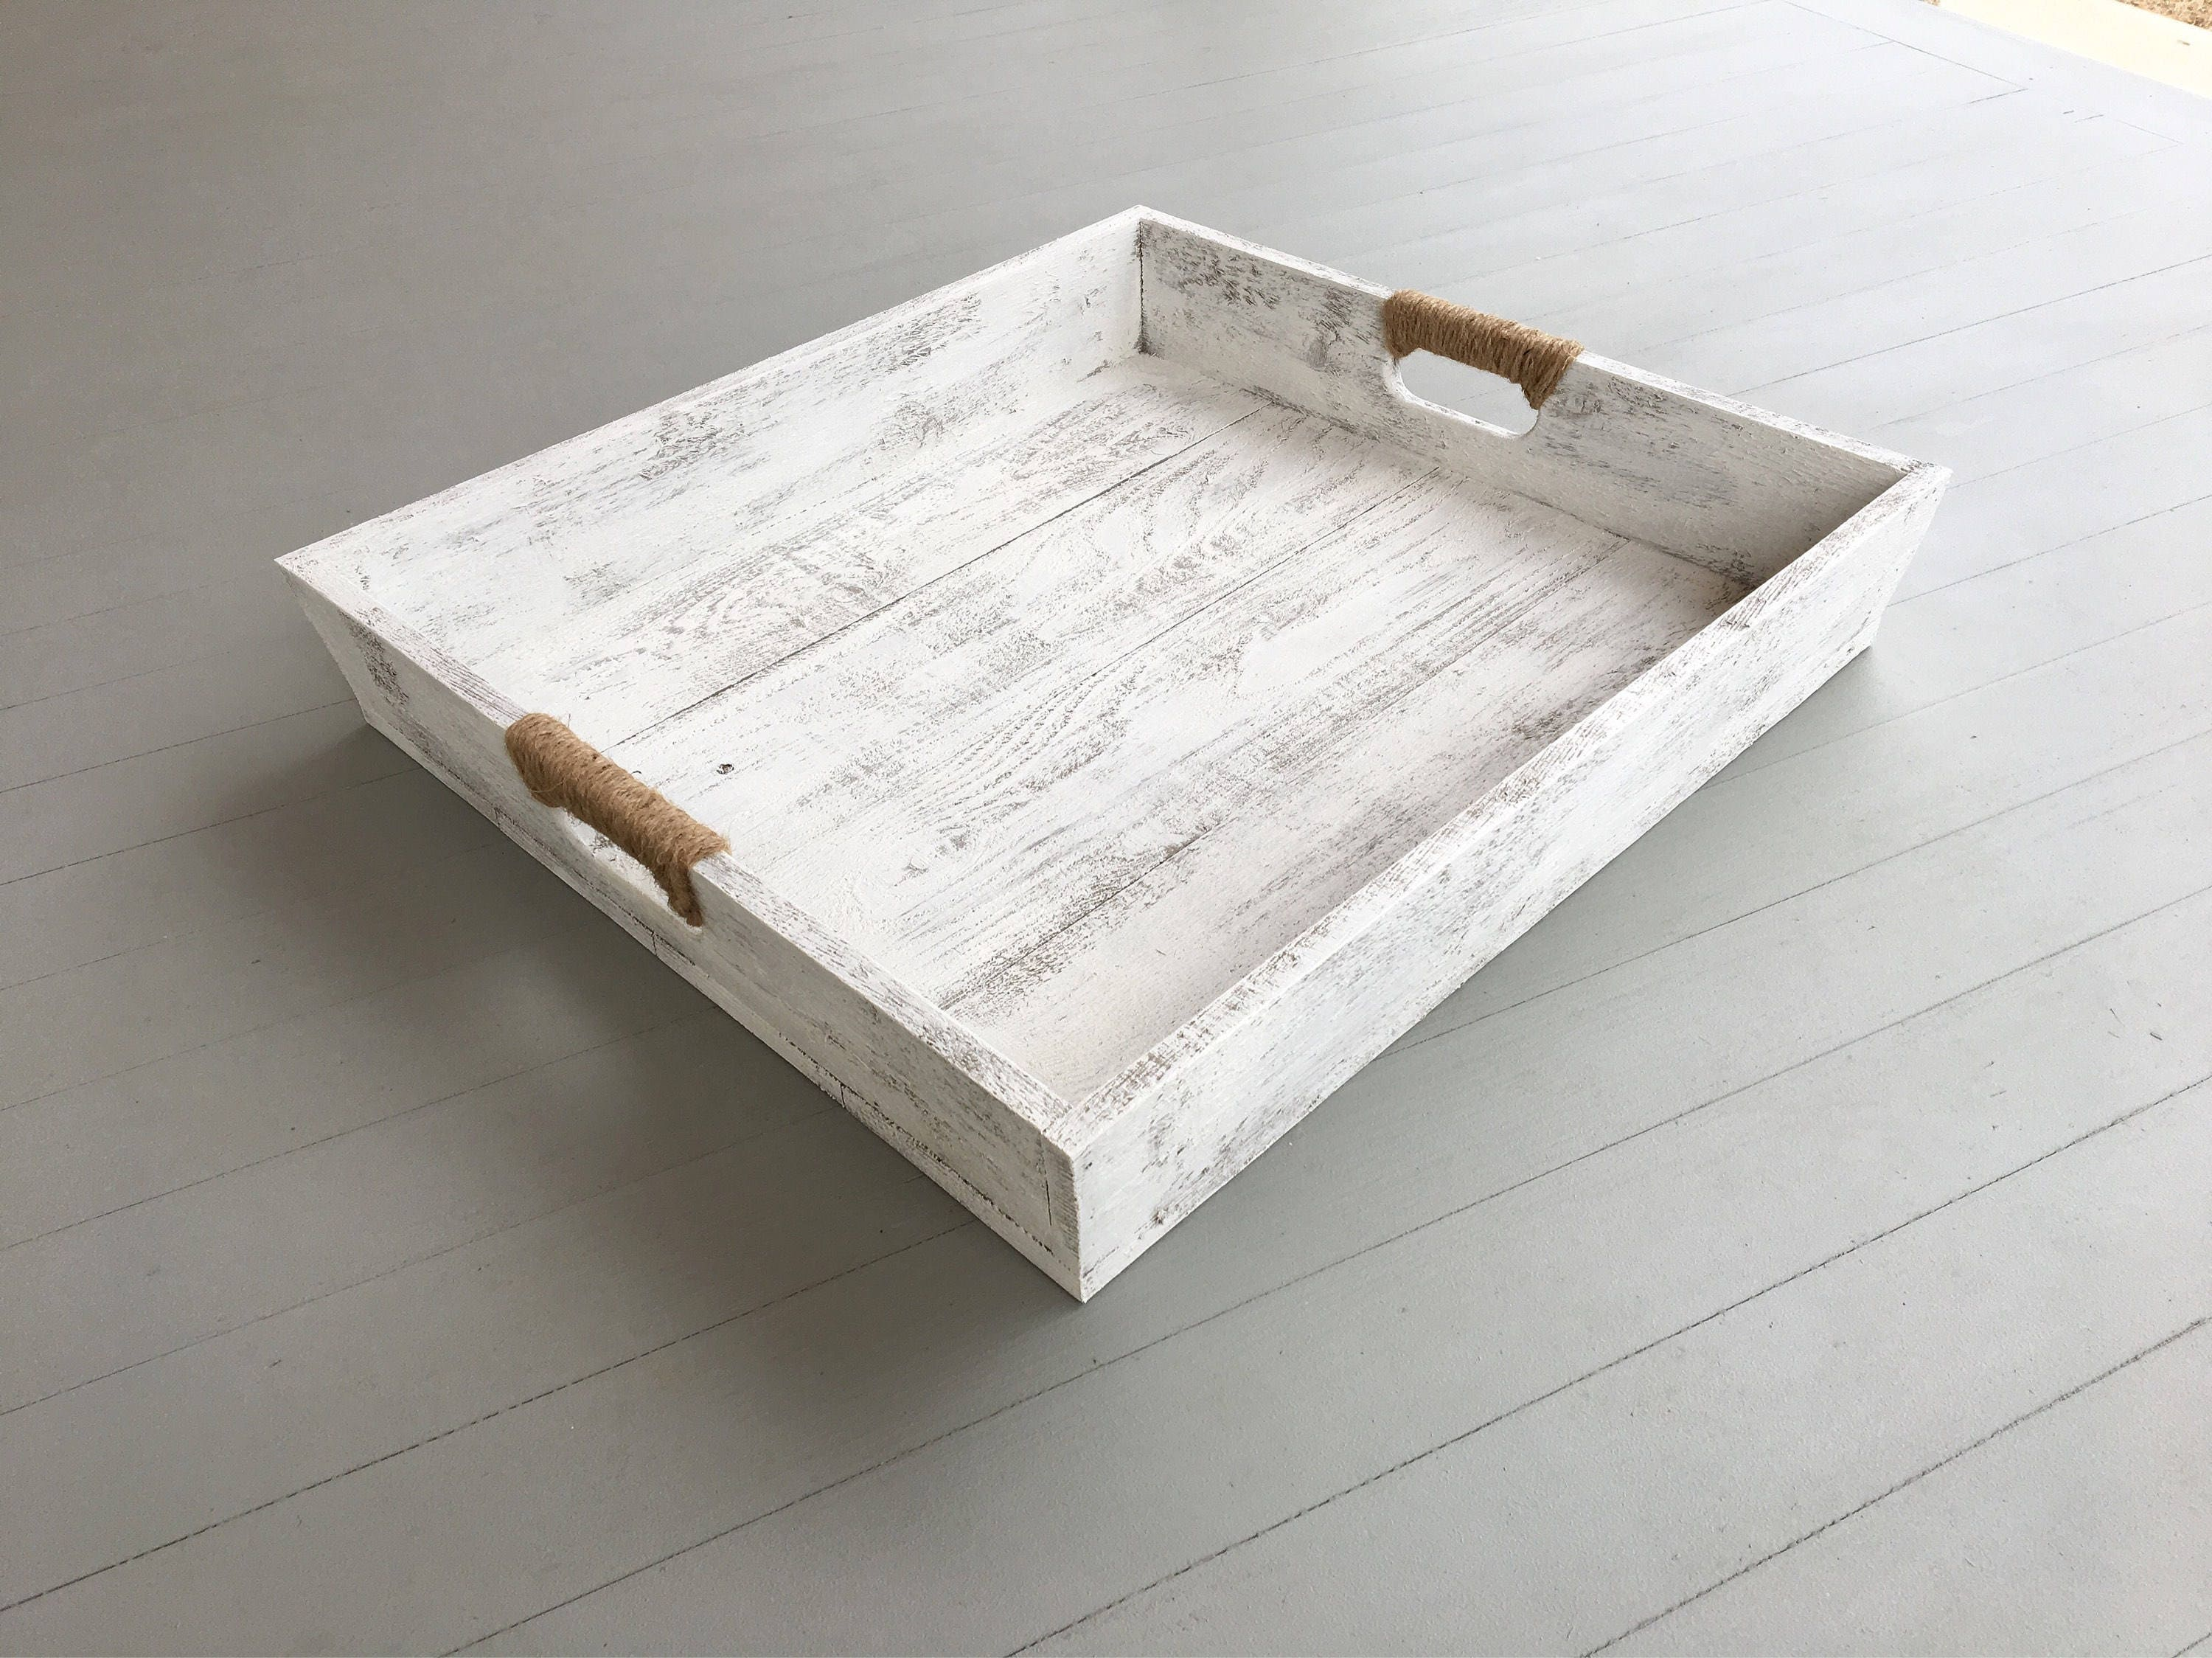 serving tray for ottoman Large Wooden Distressed Tray in White |Wooden Serving Tray  serving tray for ottoman